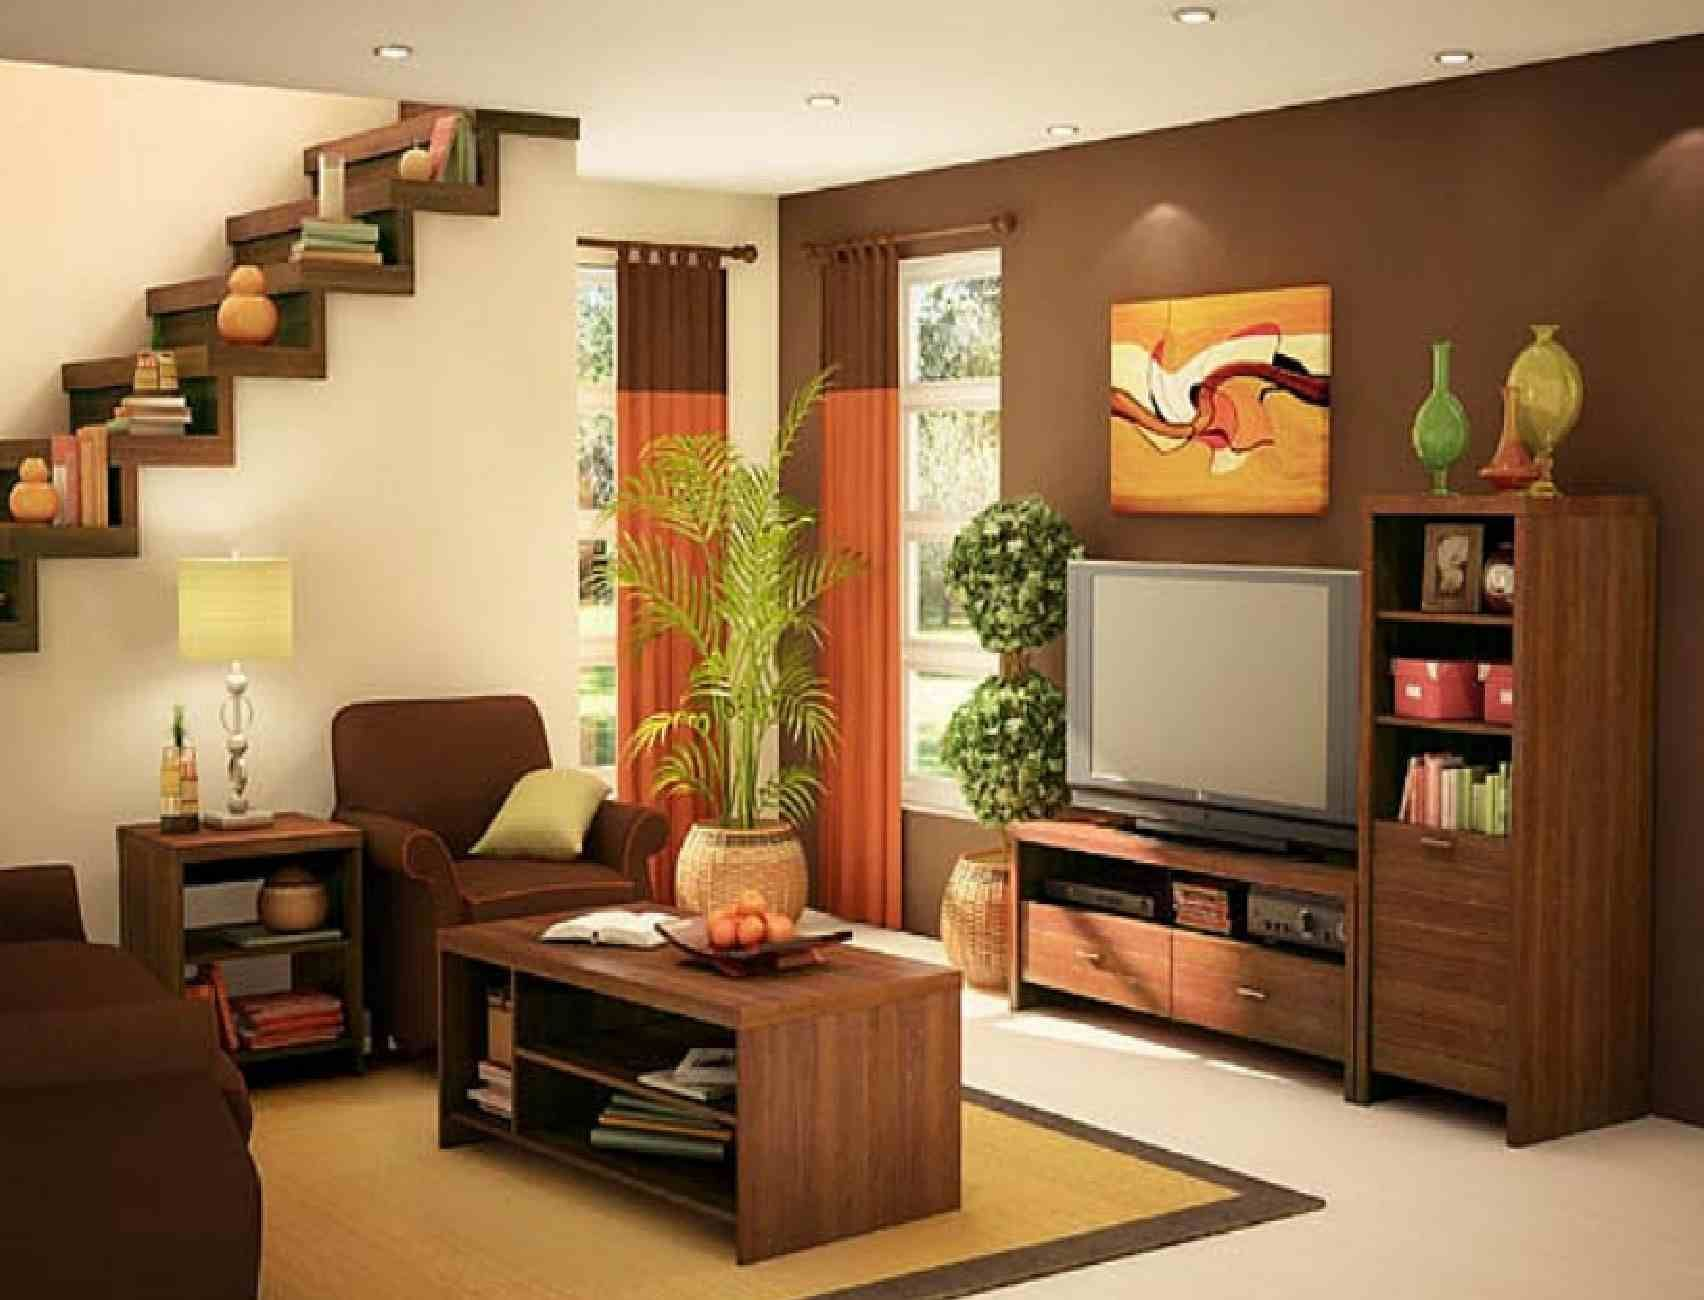 Living Room Designs For Small Spaces 2014 images of living rooms with tan walls | living room images and